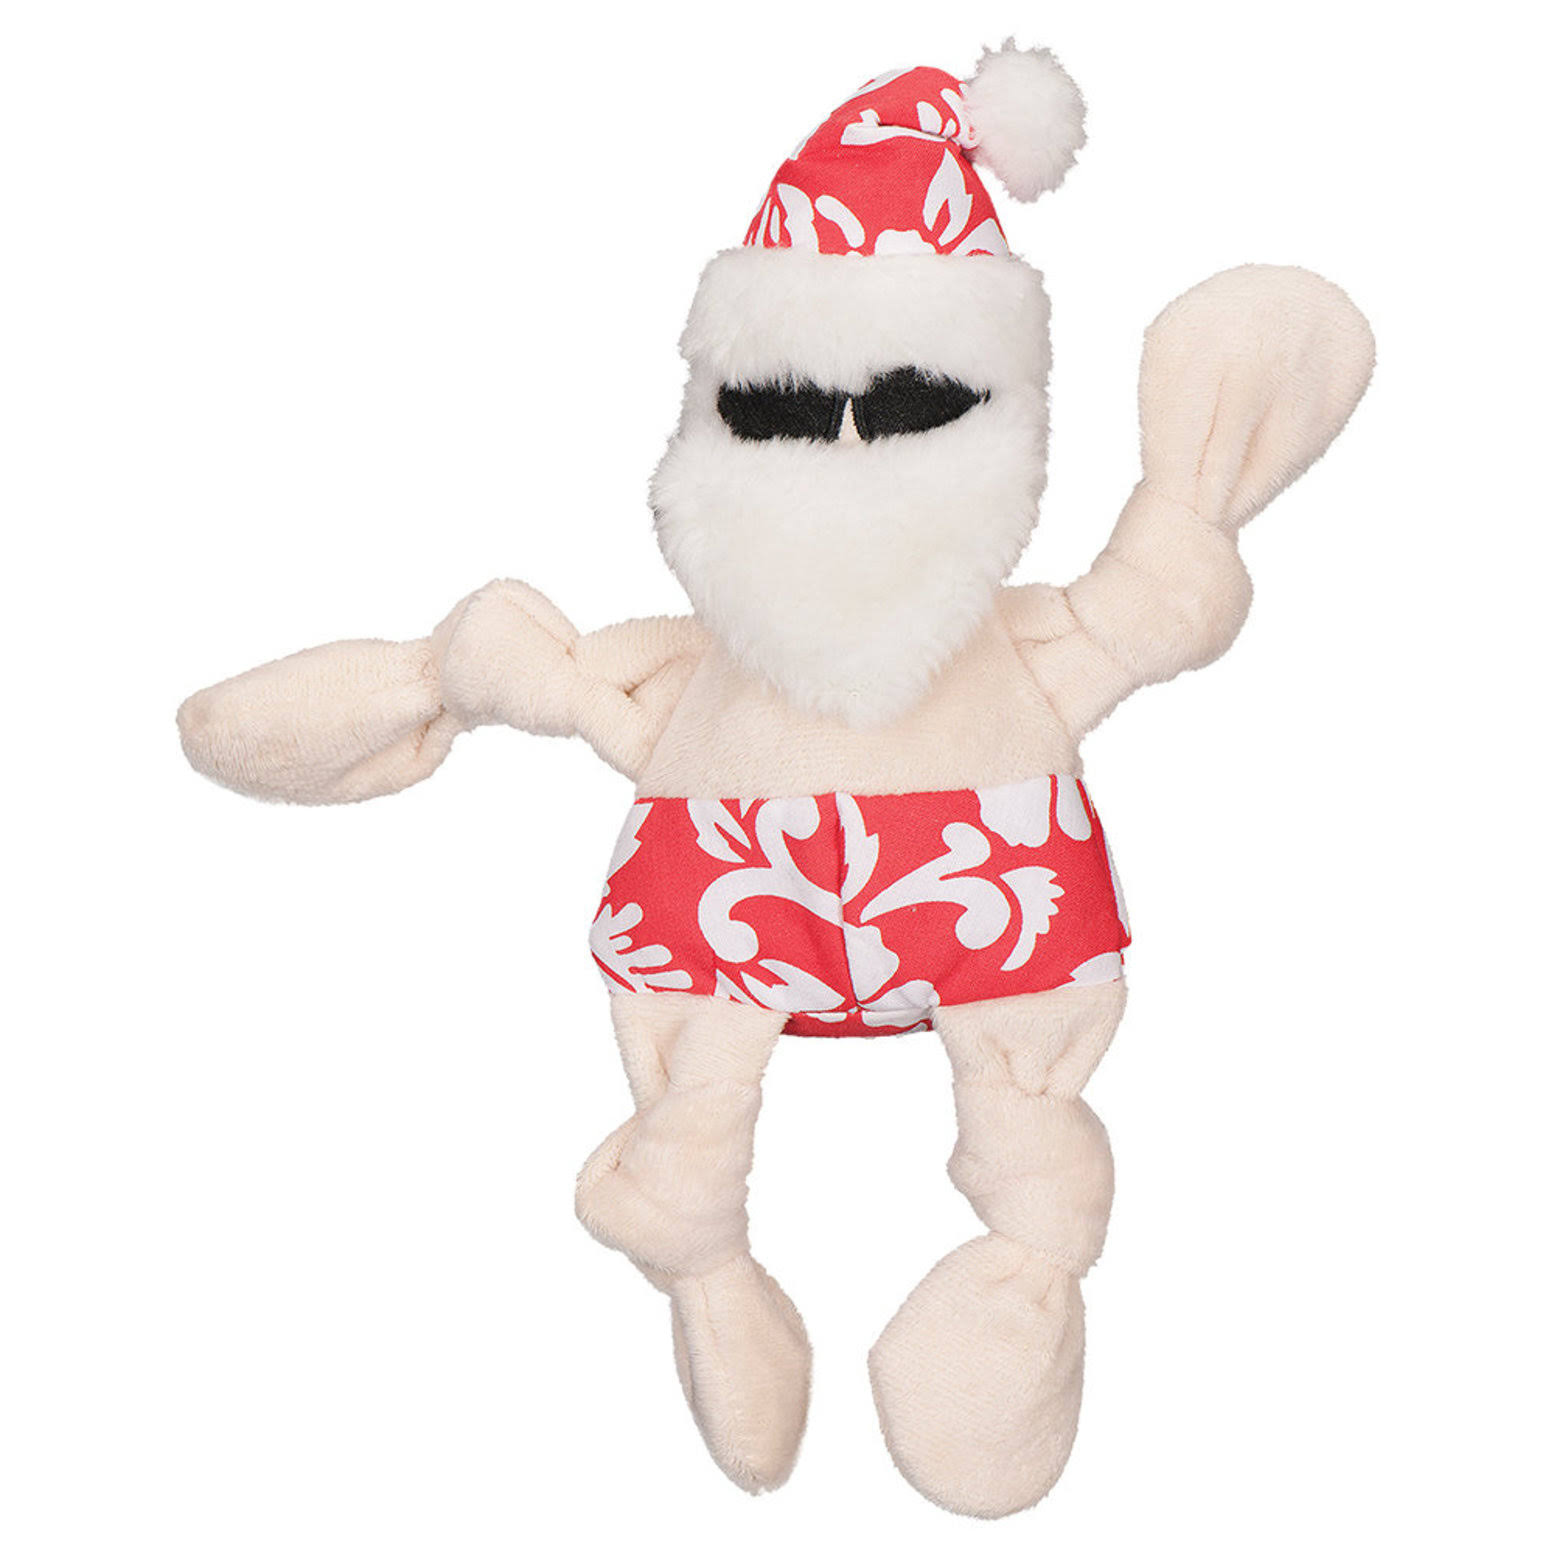 Hugglehounds Holiday Knottie Dog Toy - Beach Bum Santa - Small